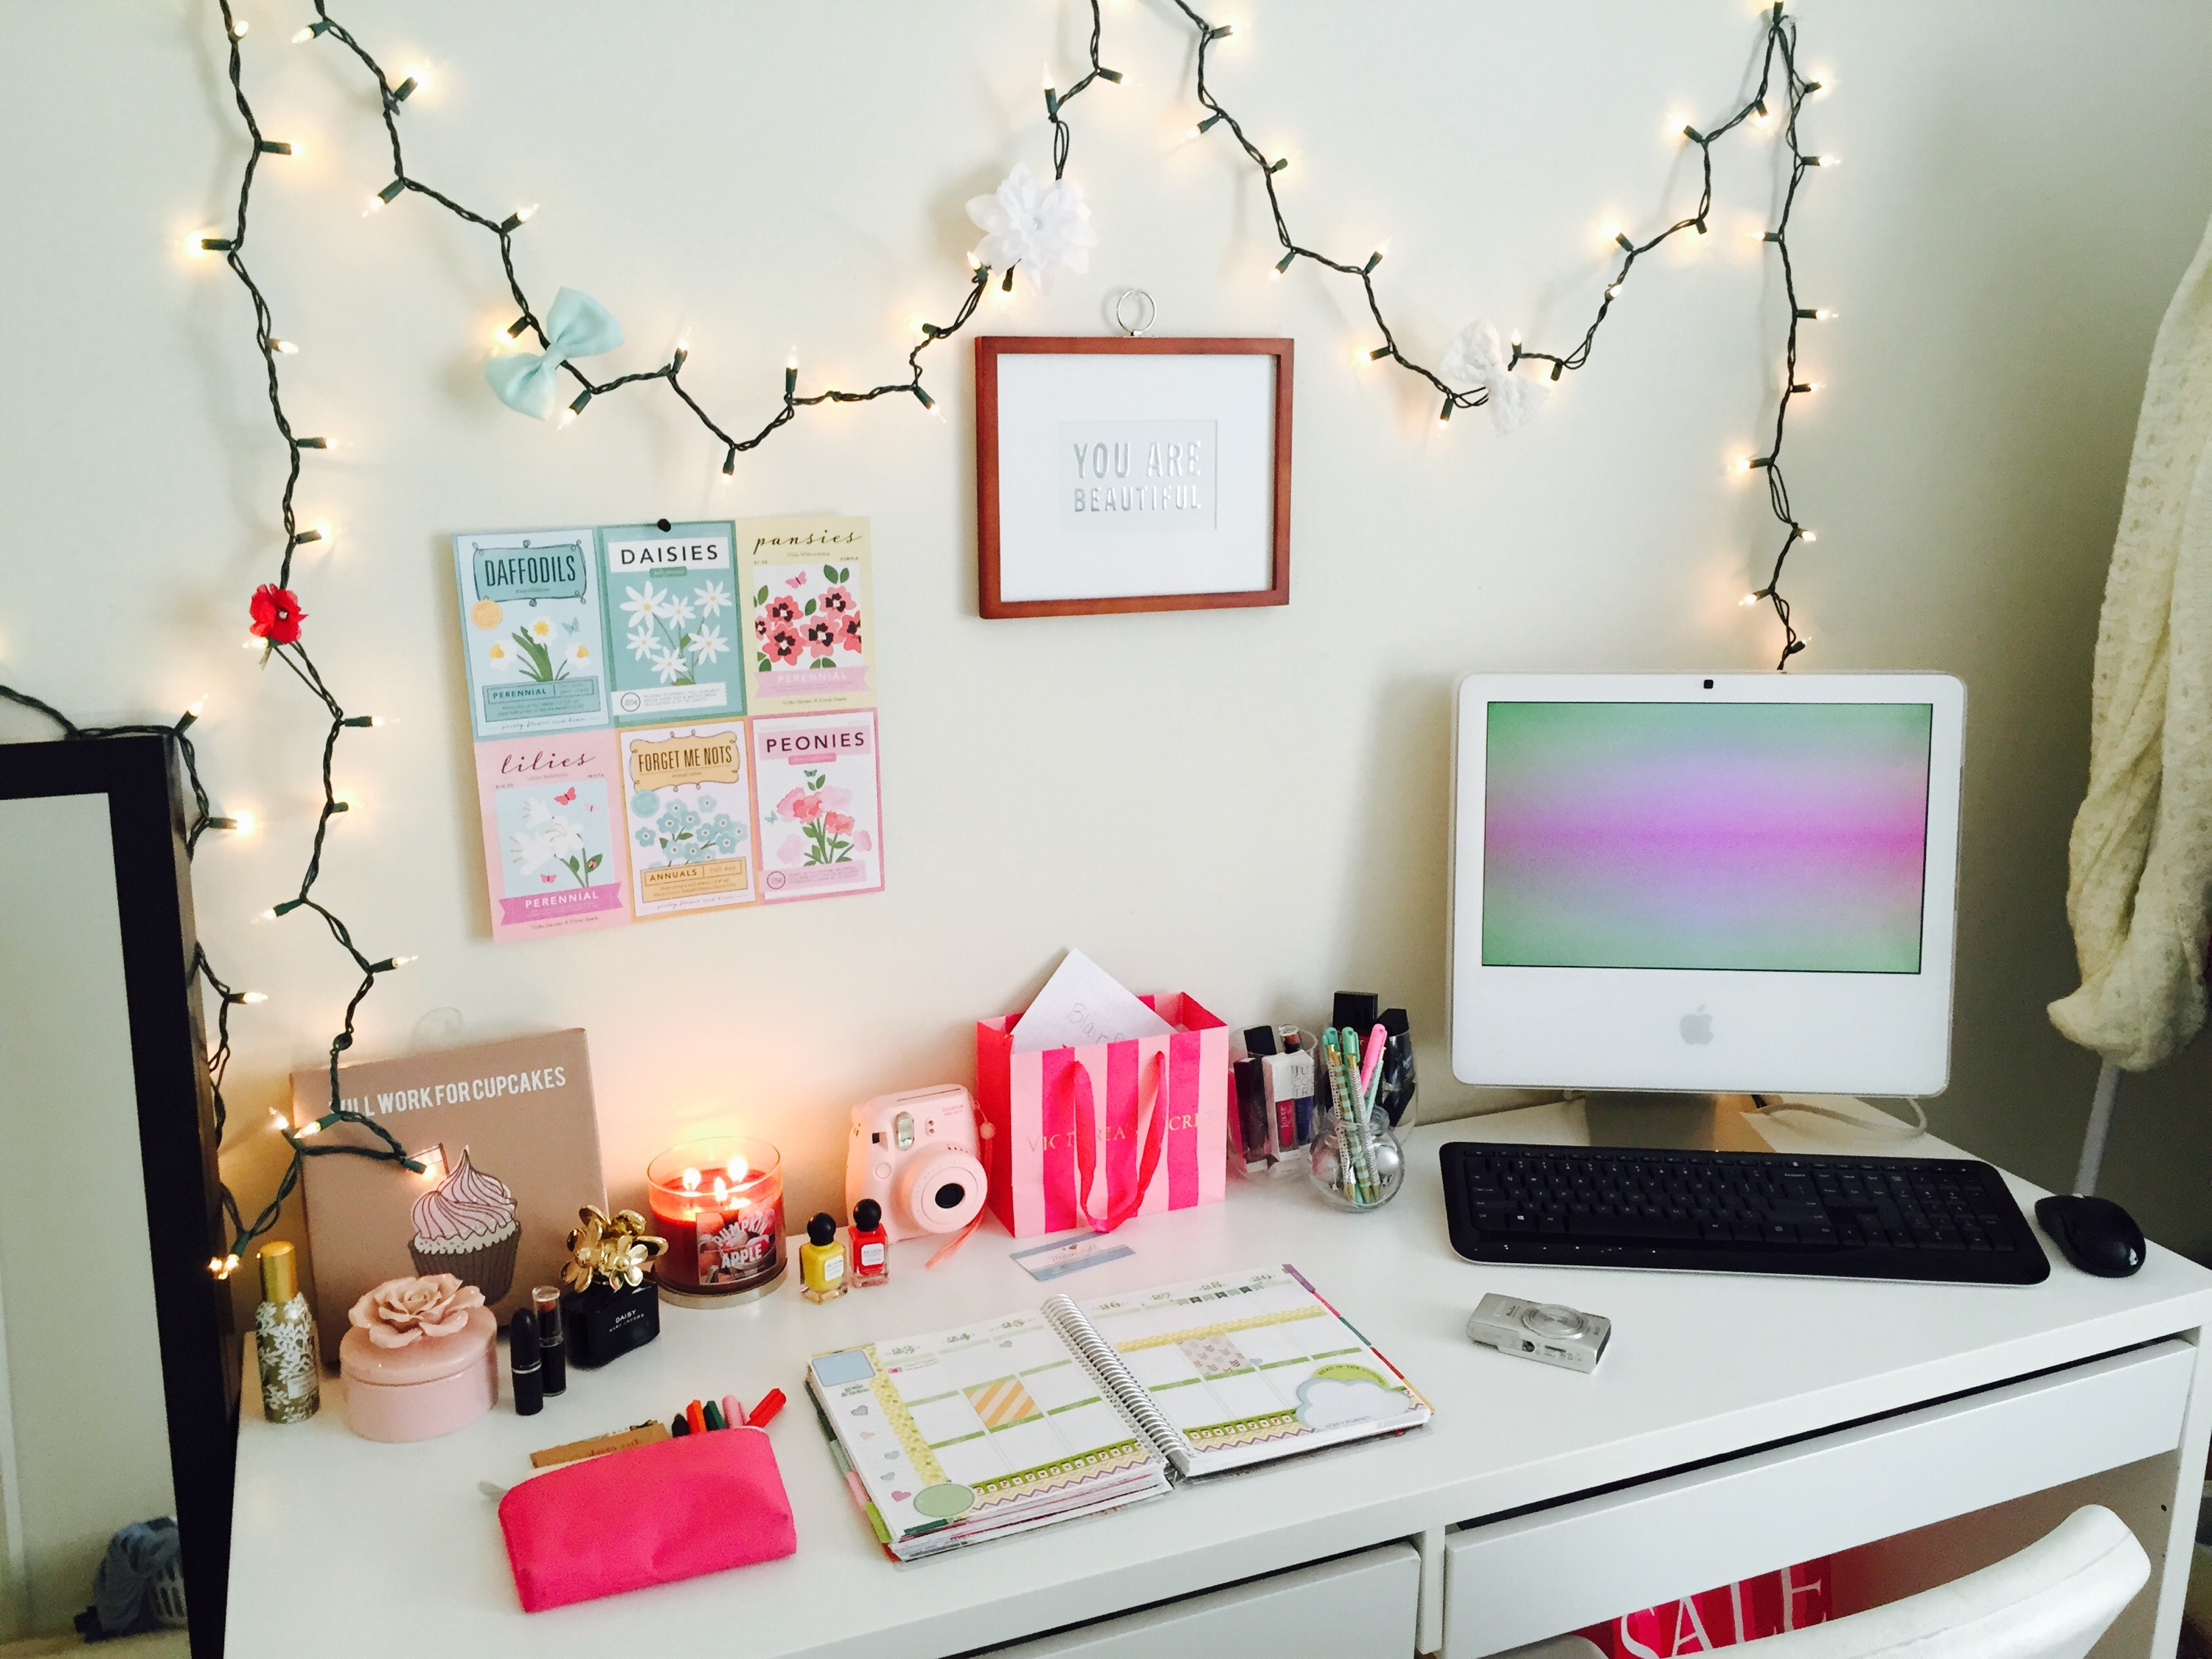 Bedroom Desk Tumblr Desk Decoration Ideas Tumblr Style Yvotube